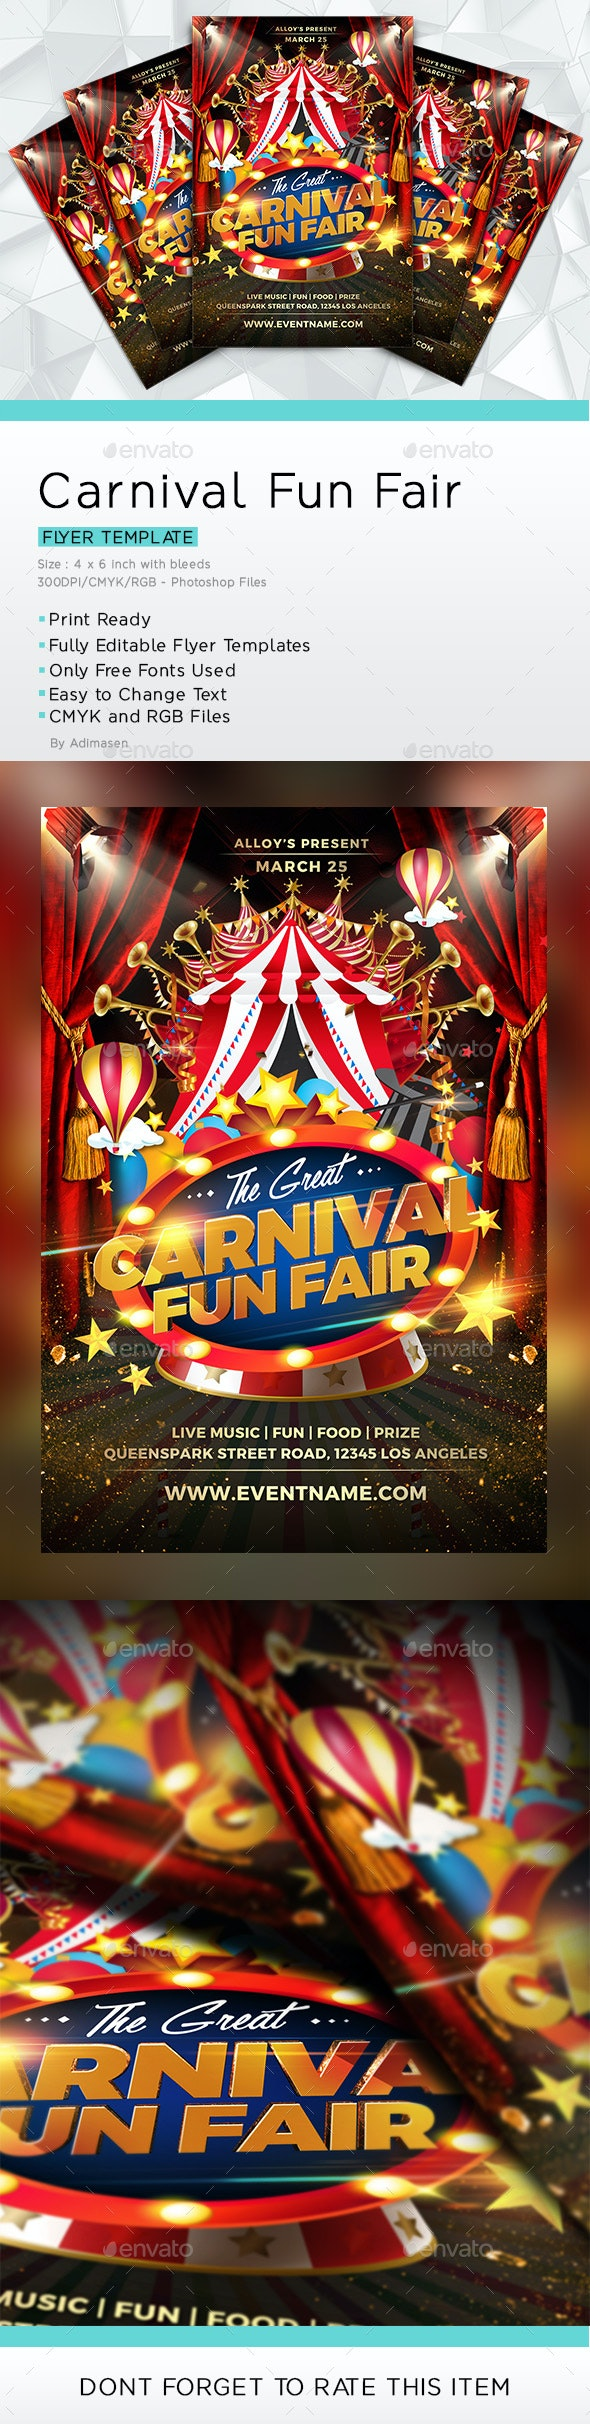 Carnival Fun Fair Flyer - Events Flyers